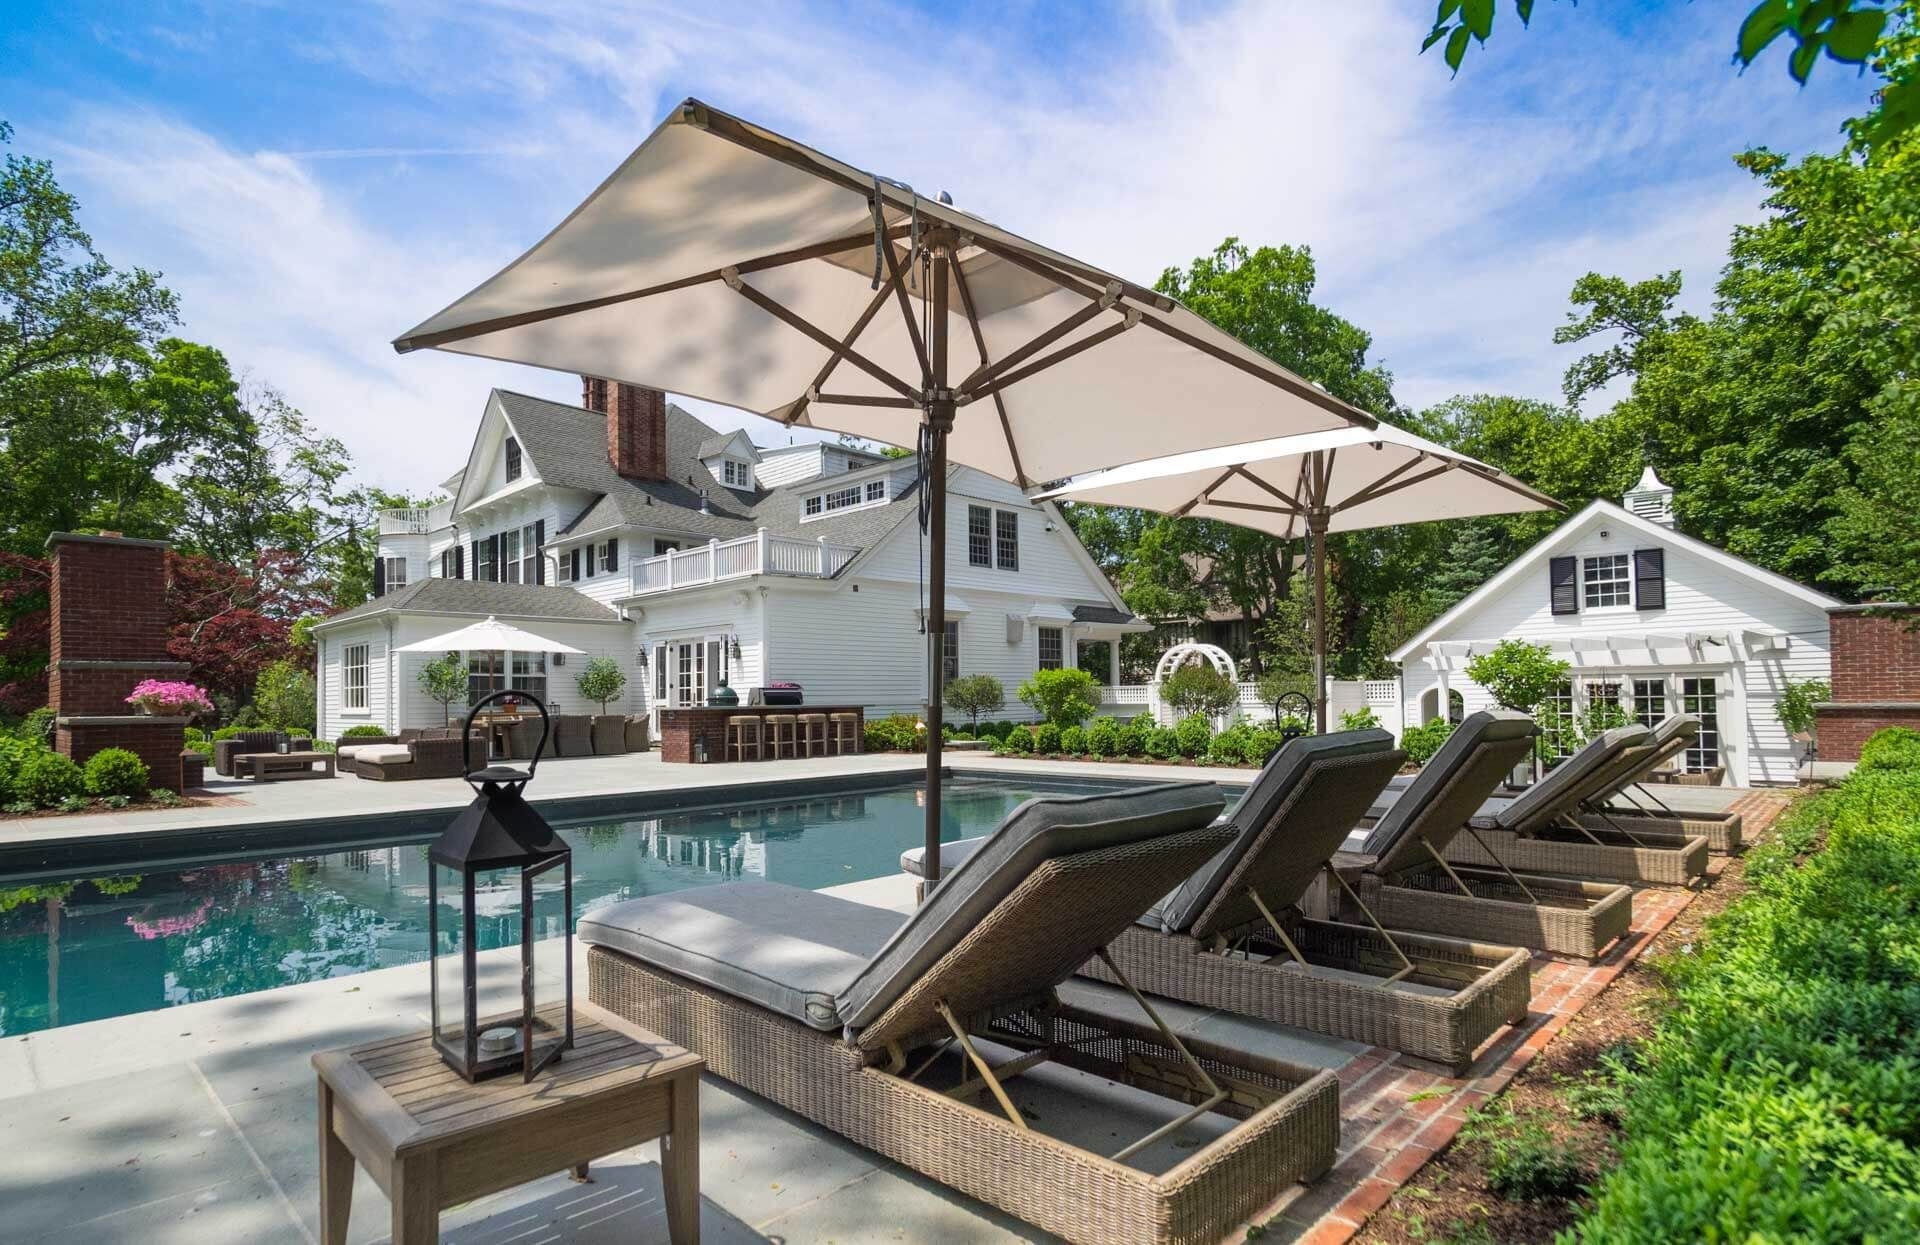 Historic Home Pool And Landscape Pool Houses Historic Home House Exterior